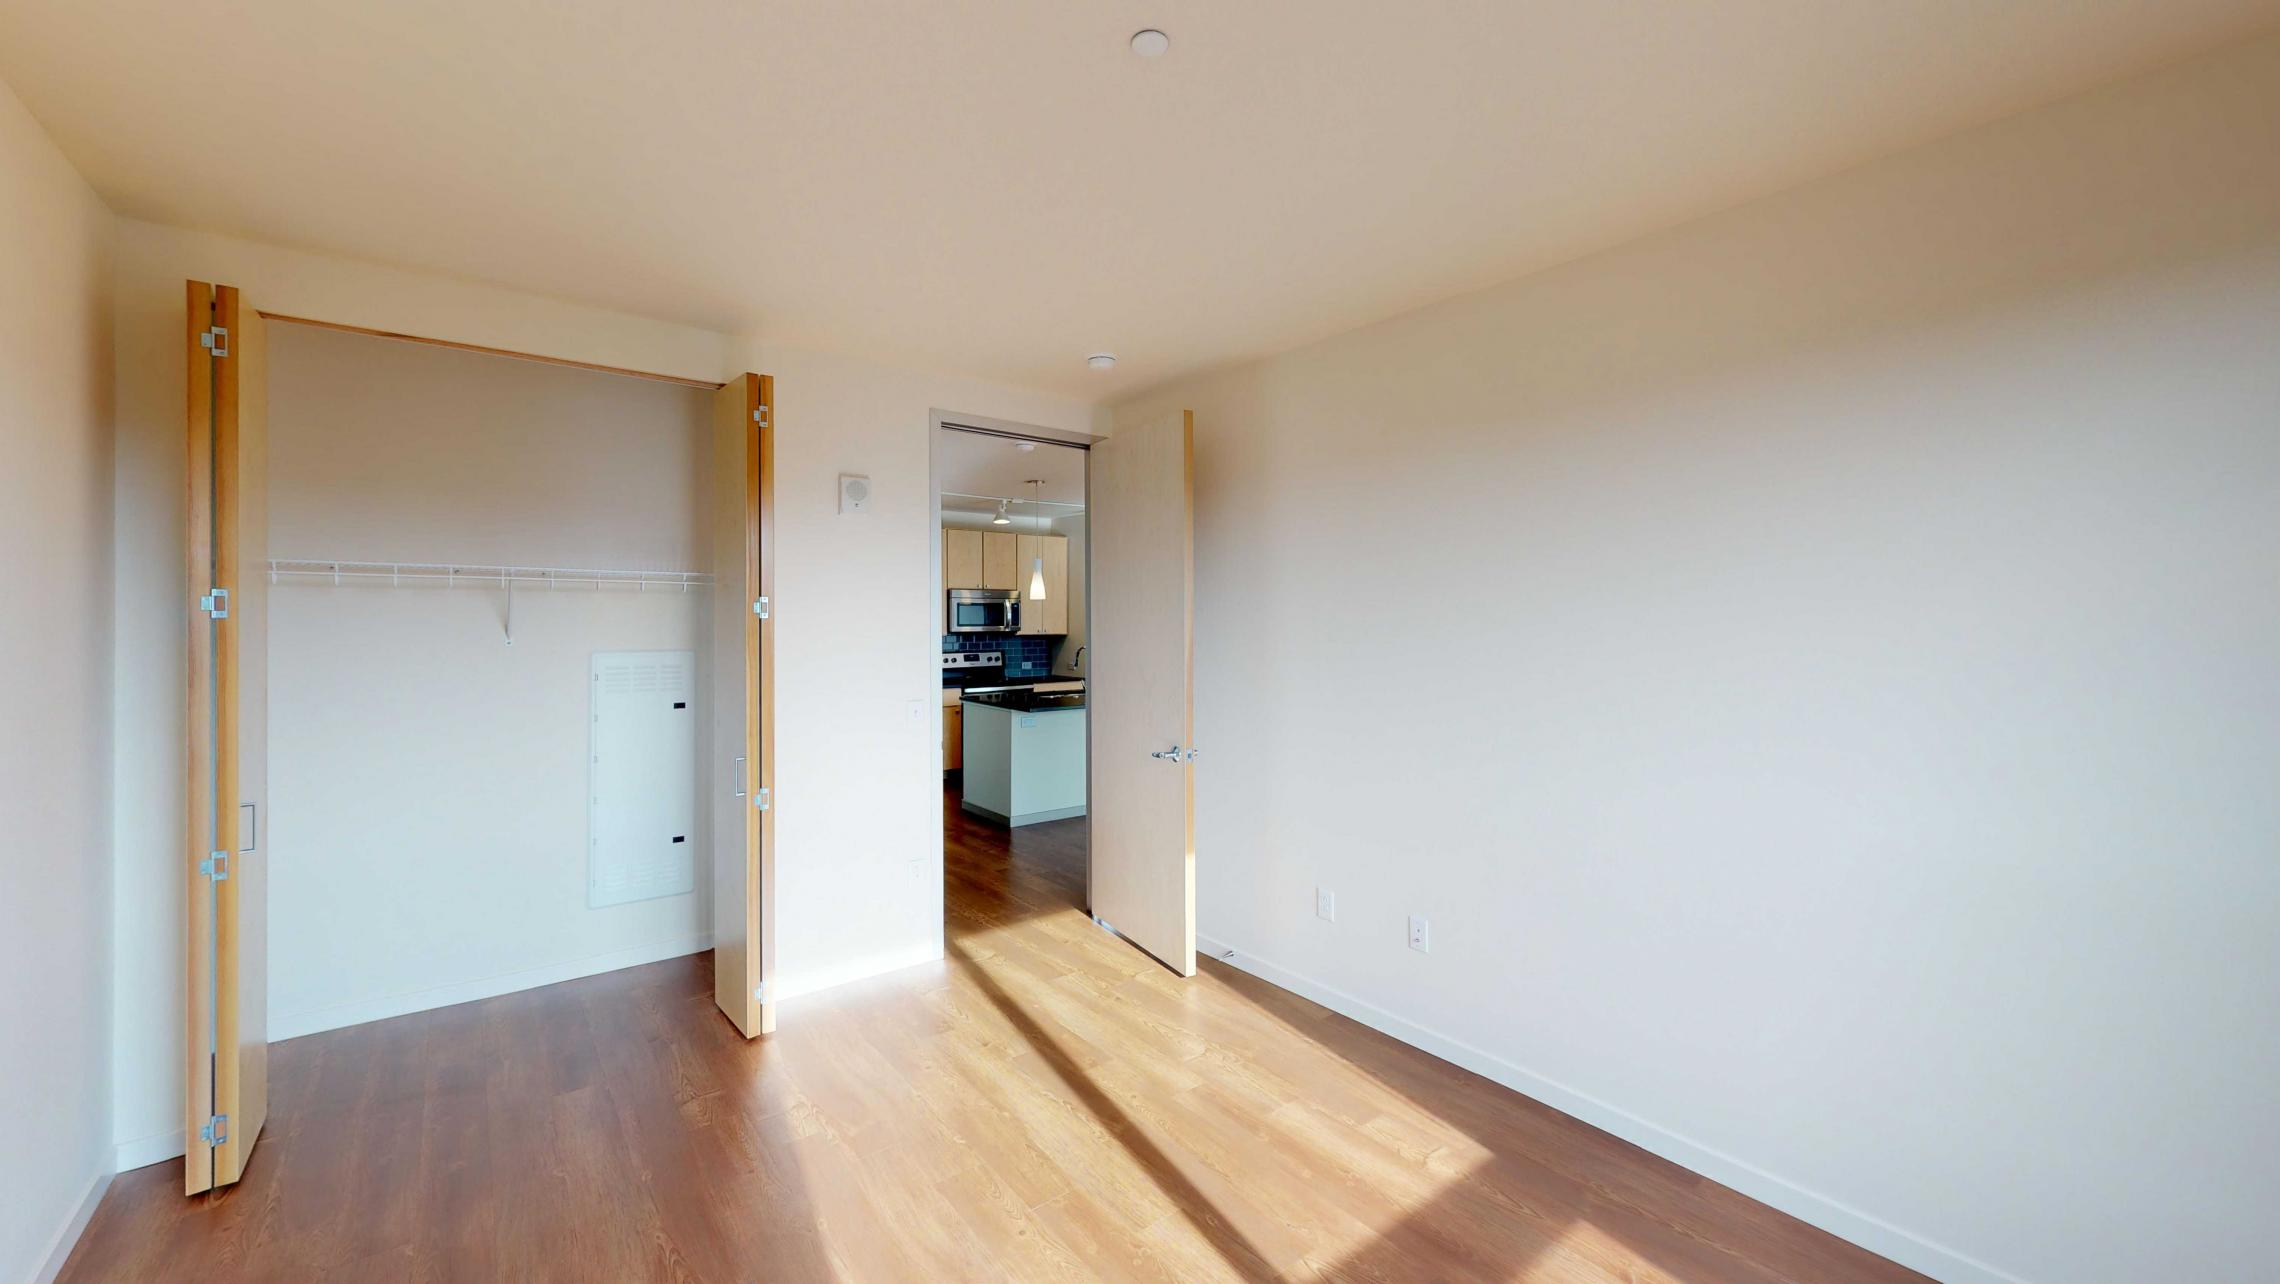 Nine-Line-Apartment-520-bedroom-upscale-downtown-balcony-lakeview-madison-luxury-lifestyle-capitol.jpg